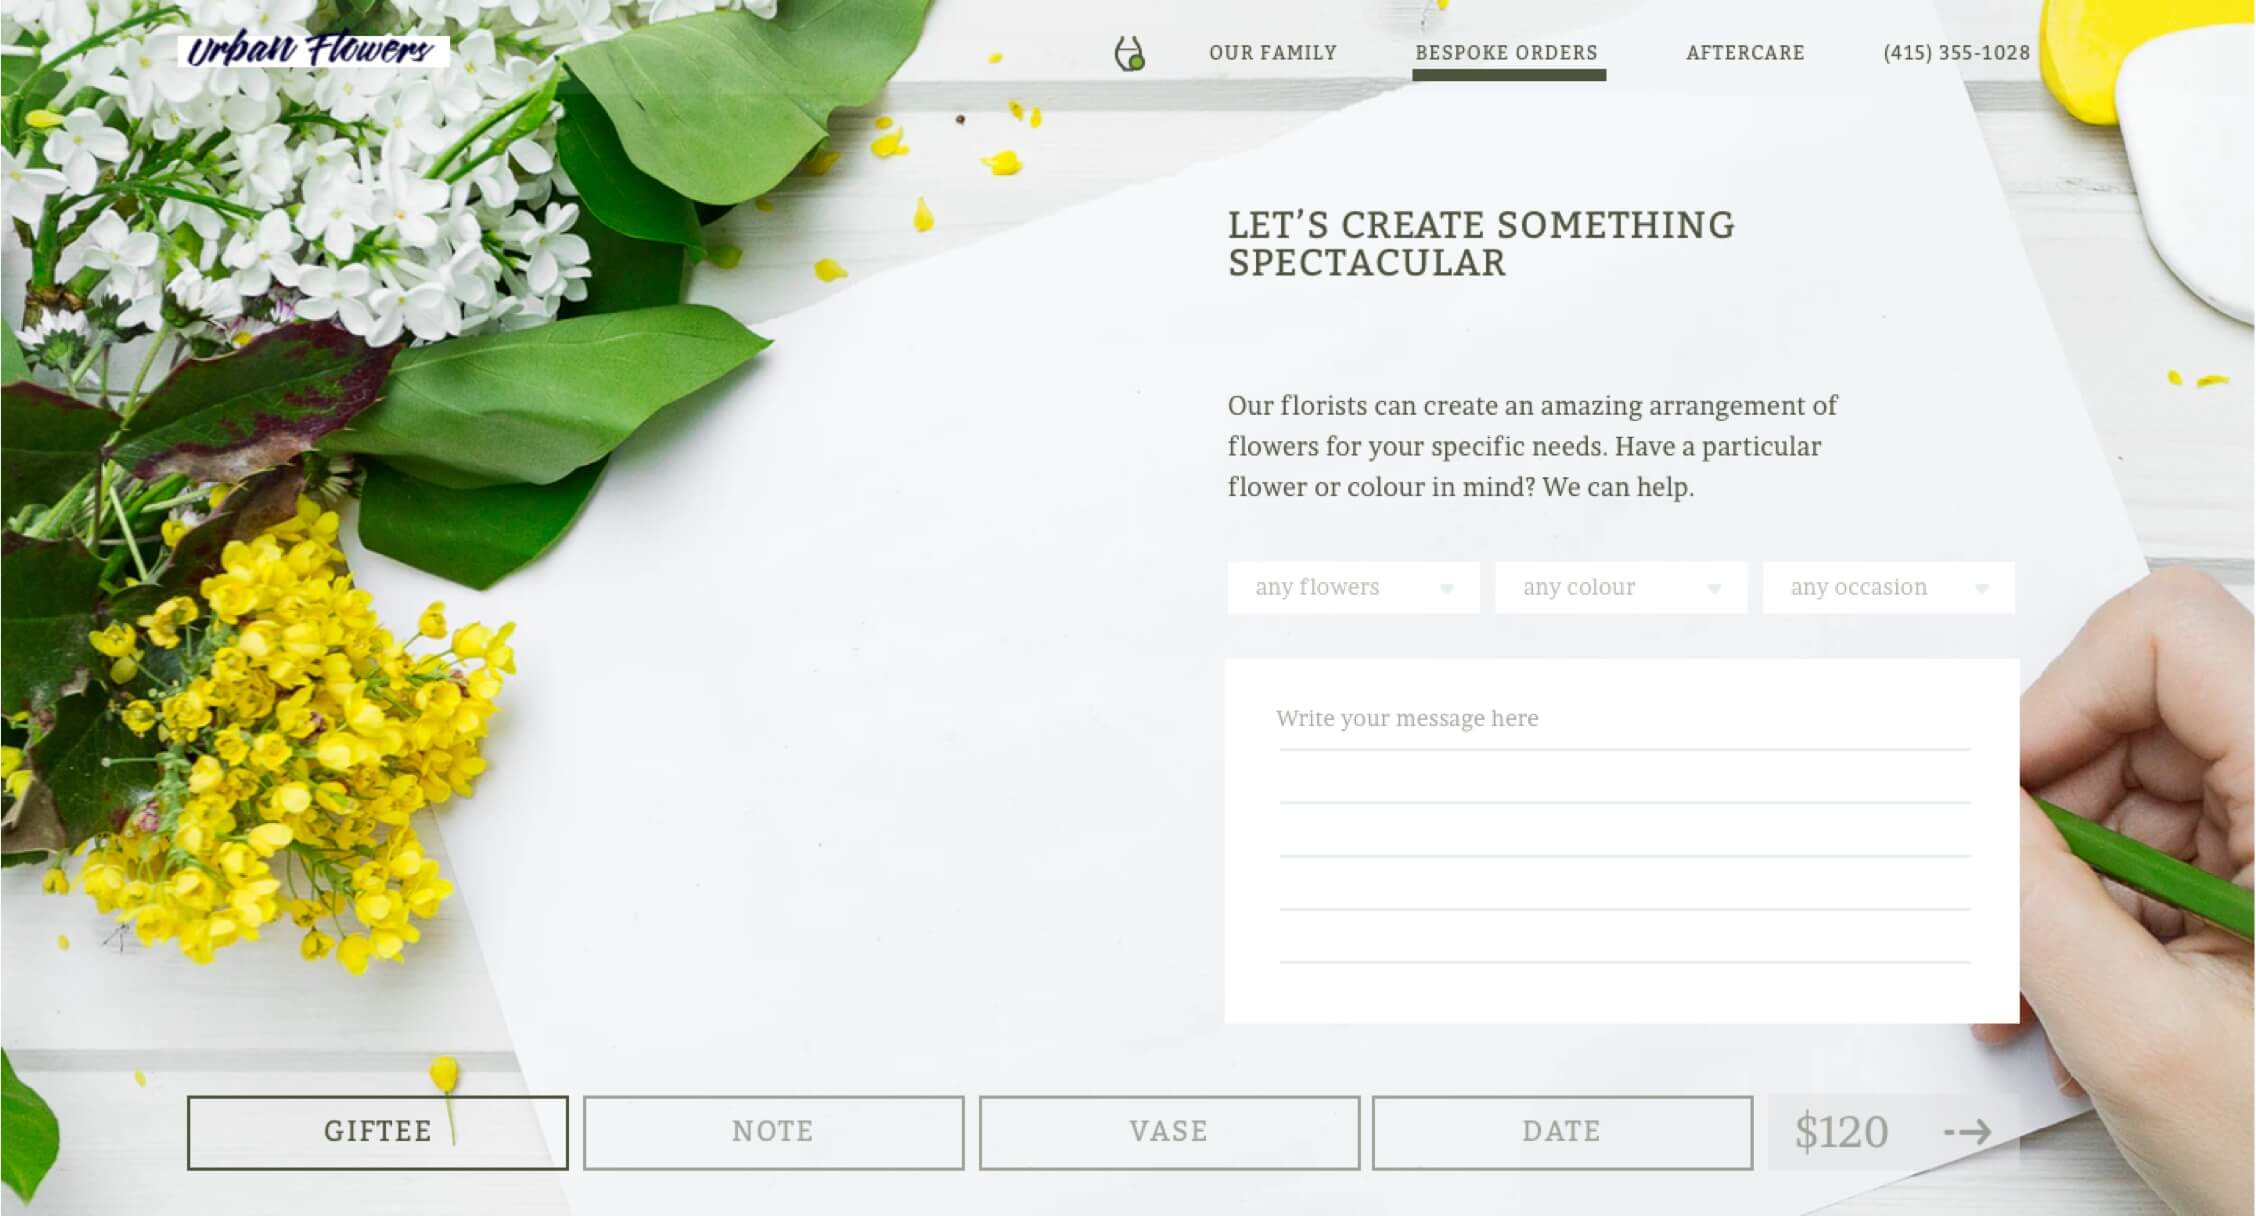 The home page of the redesigned website